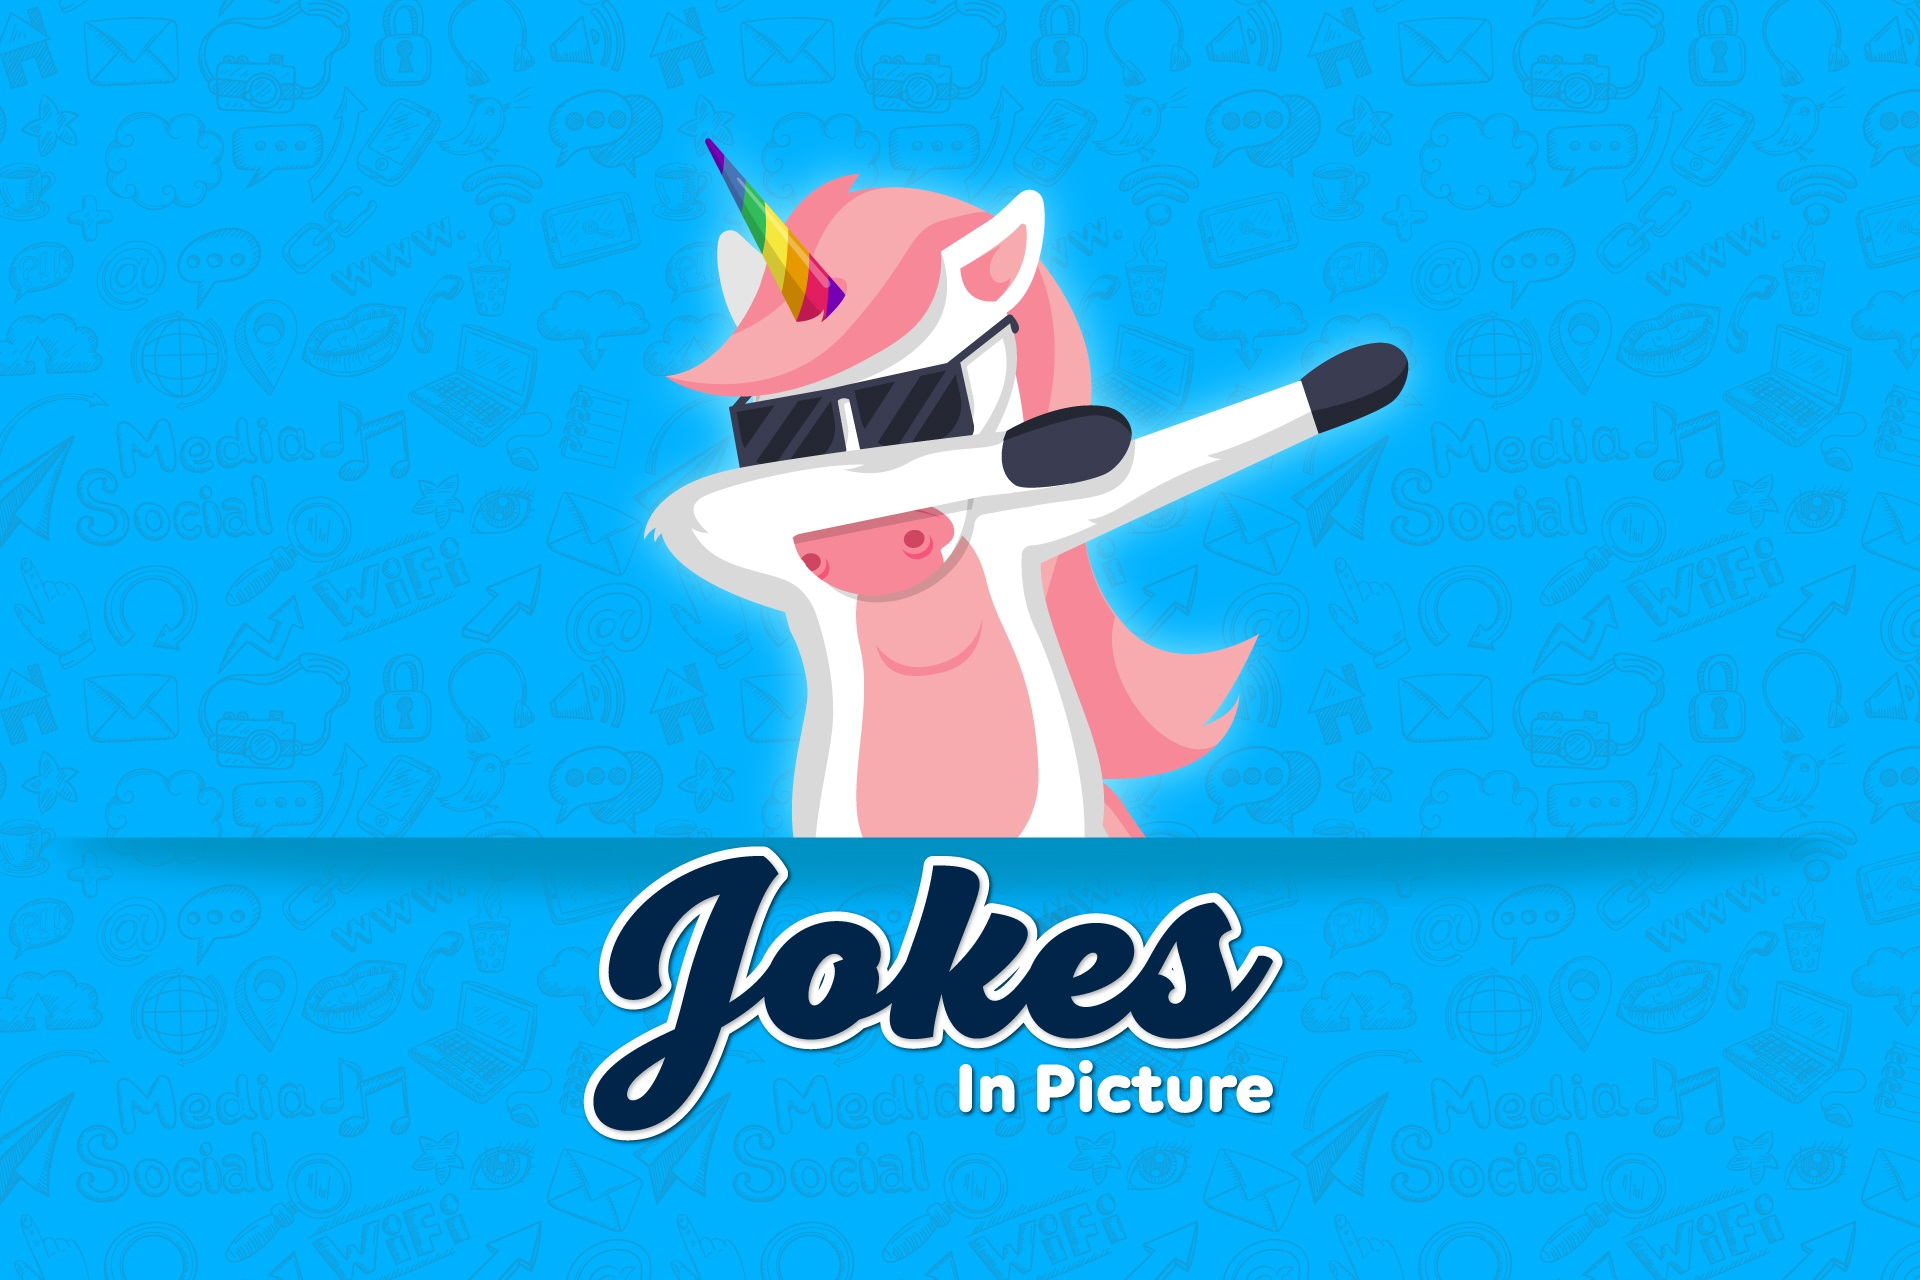 Jokes-In-Pictures-Head-Image